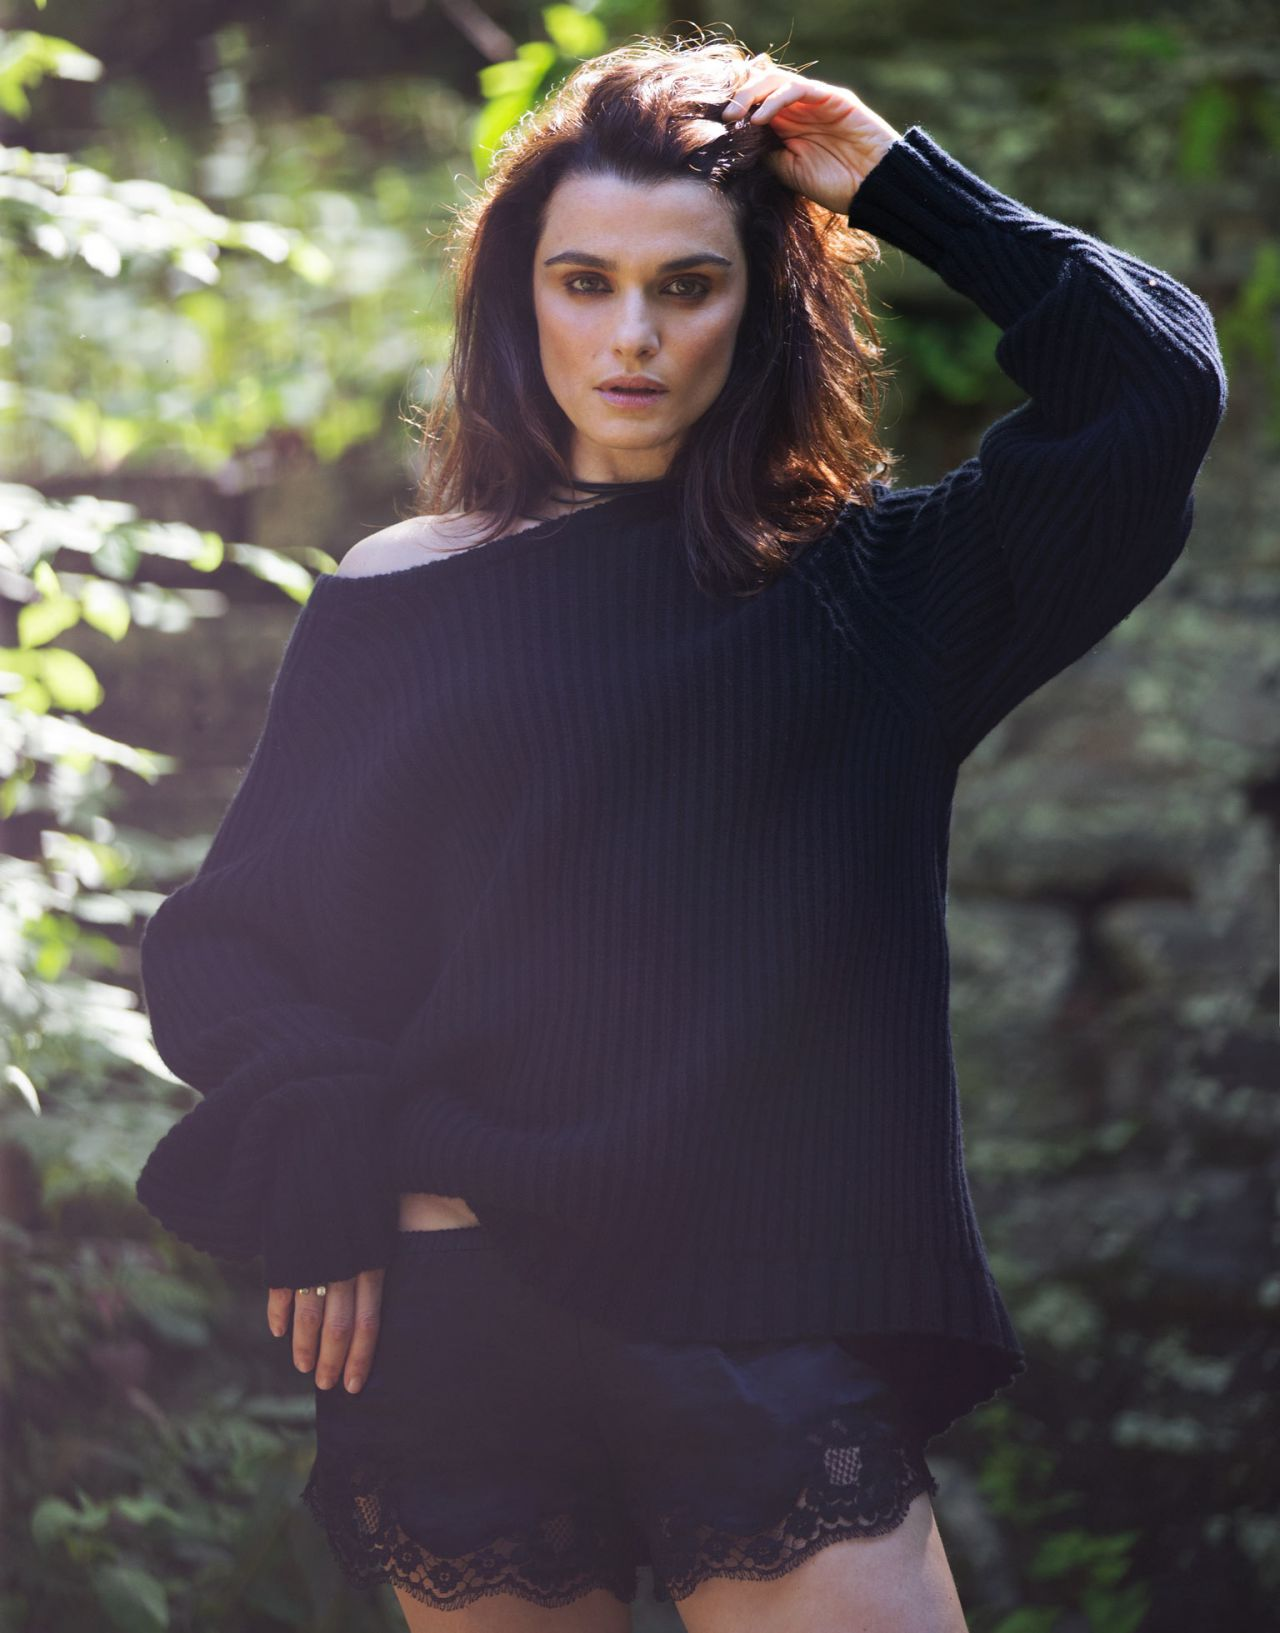 rachel-weisz-the-edit-magazine-august-24-2016-issue-1.jpg